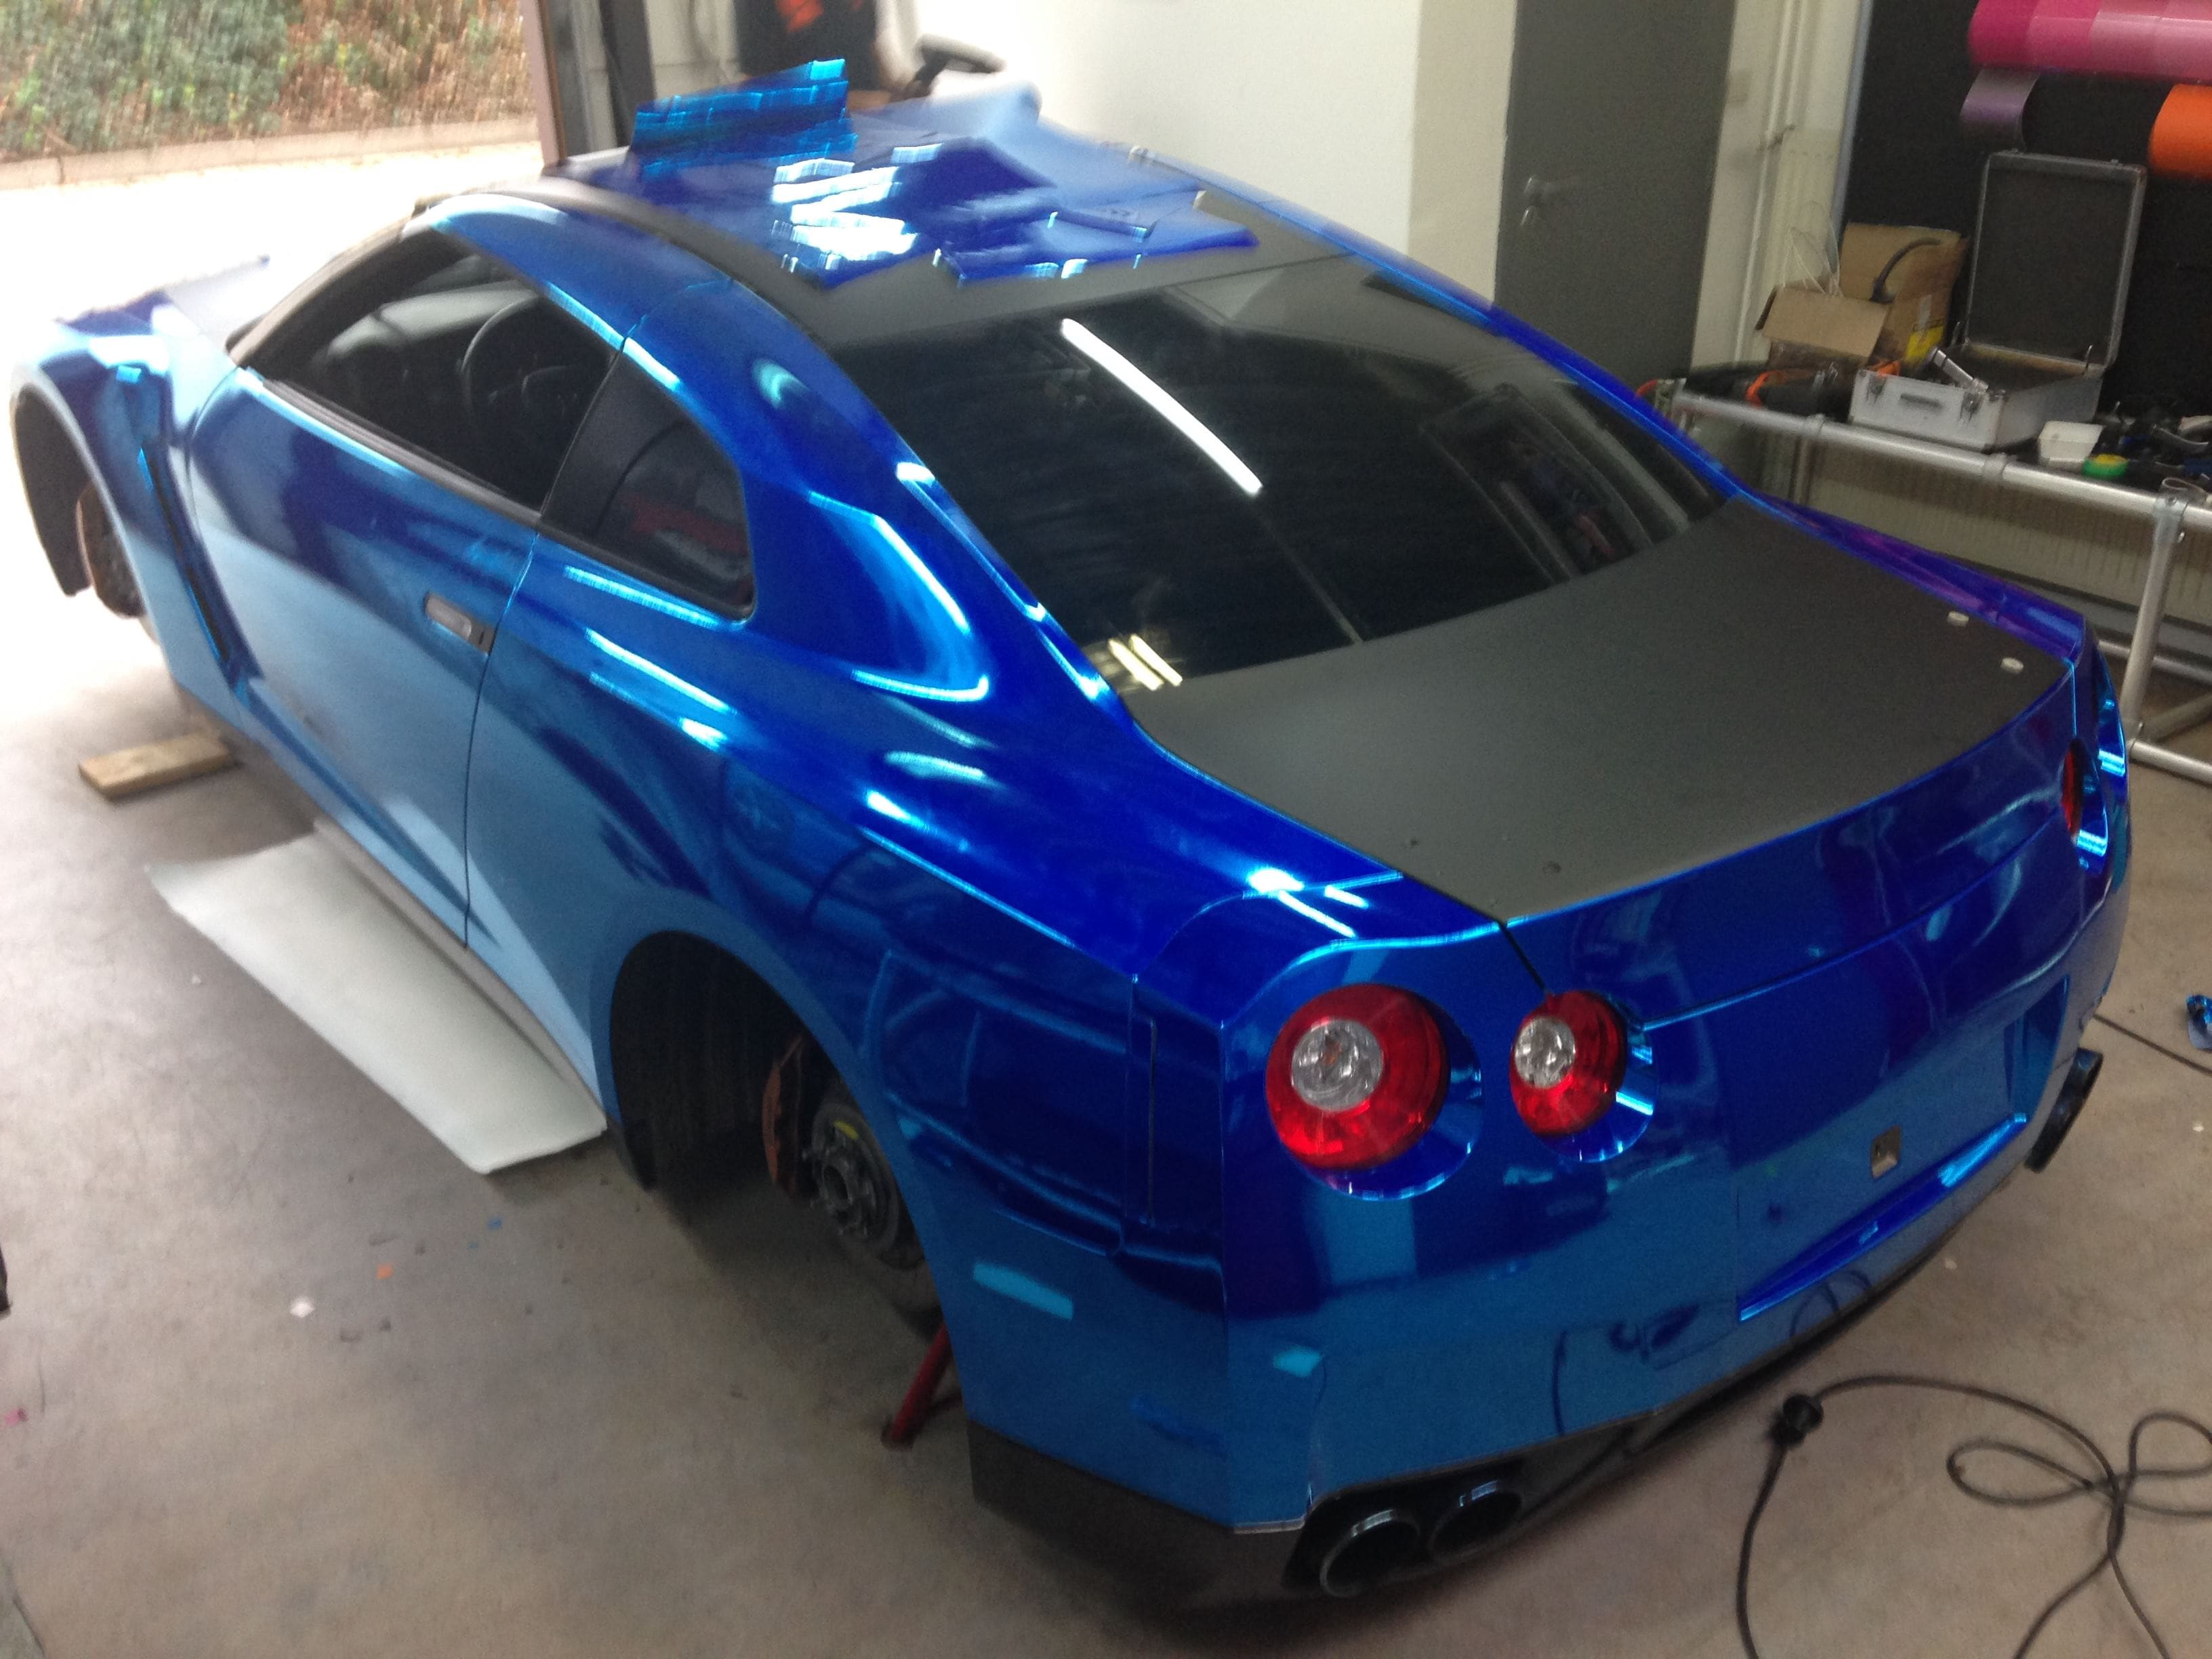 Nissan GT-R met Blue Chrome Wrap, Carwrapping door Wrapmyride.nu Foto-nr:6460, ©2020